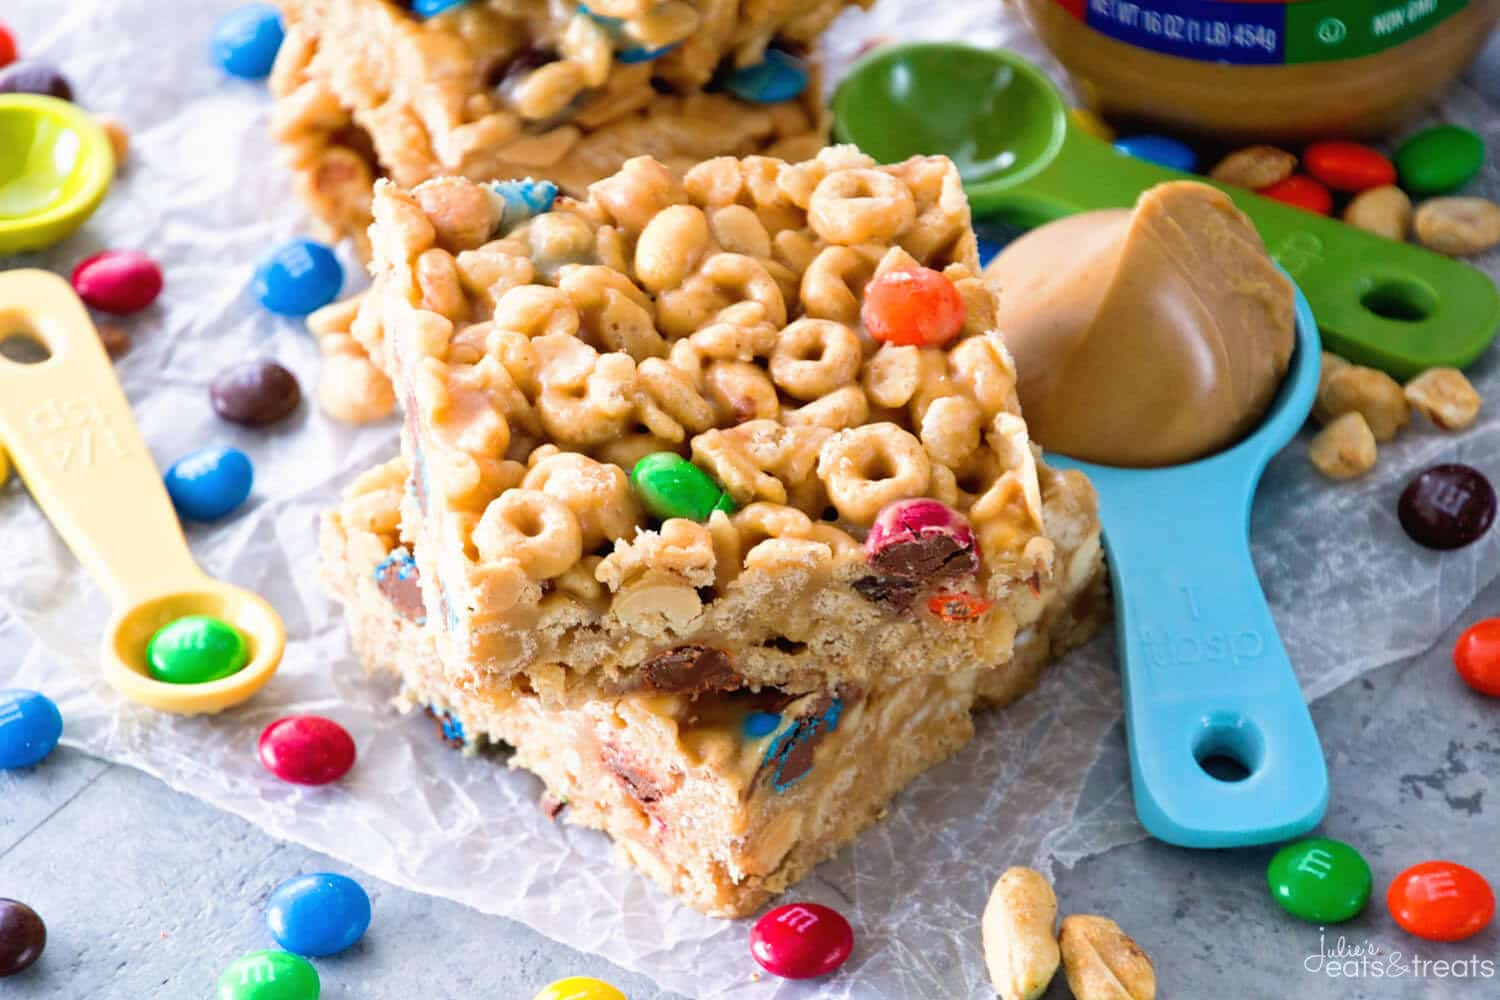 Cereal Bar with cheerios and m&ms